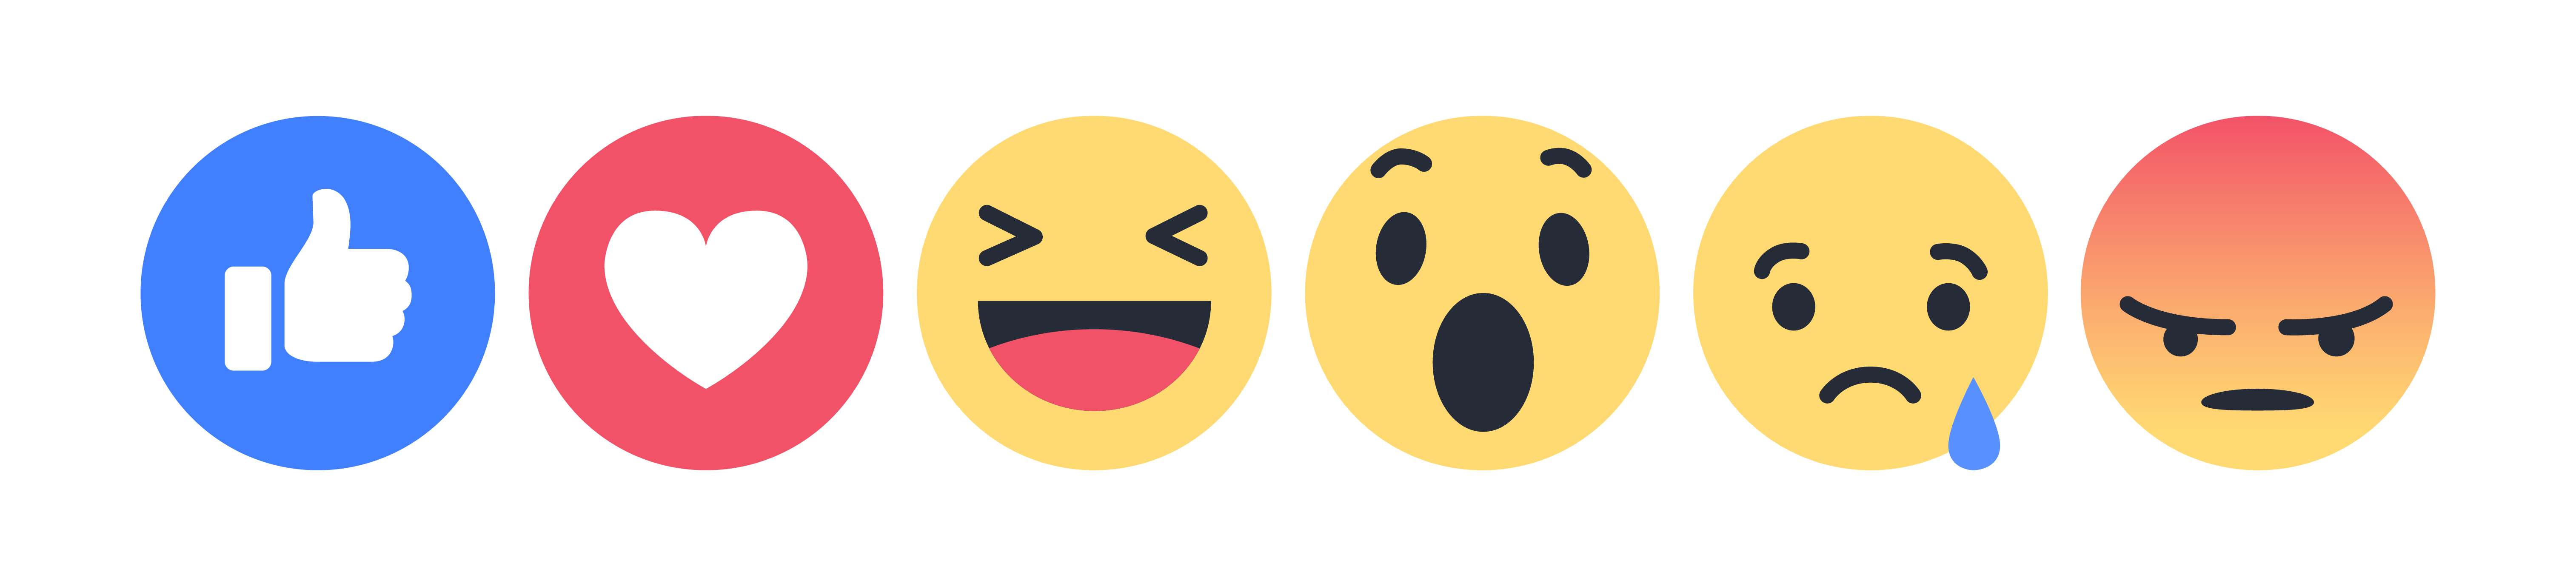 Facebook Reactions (Love, Haha, Wow, Sad, Angry)